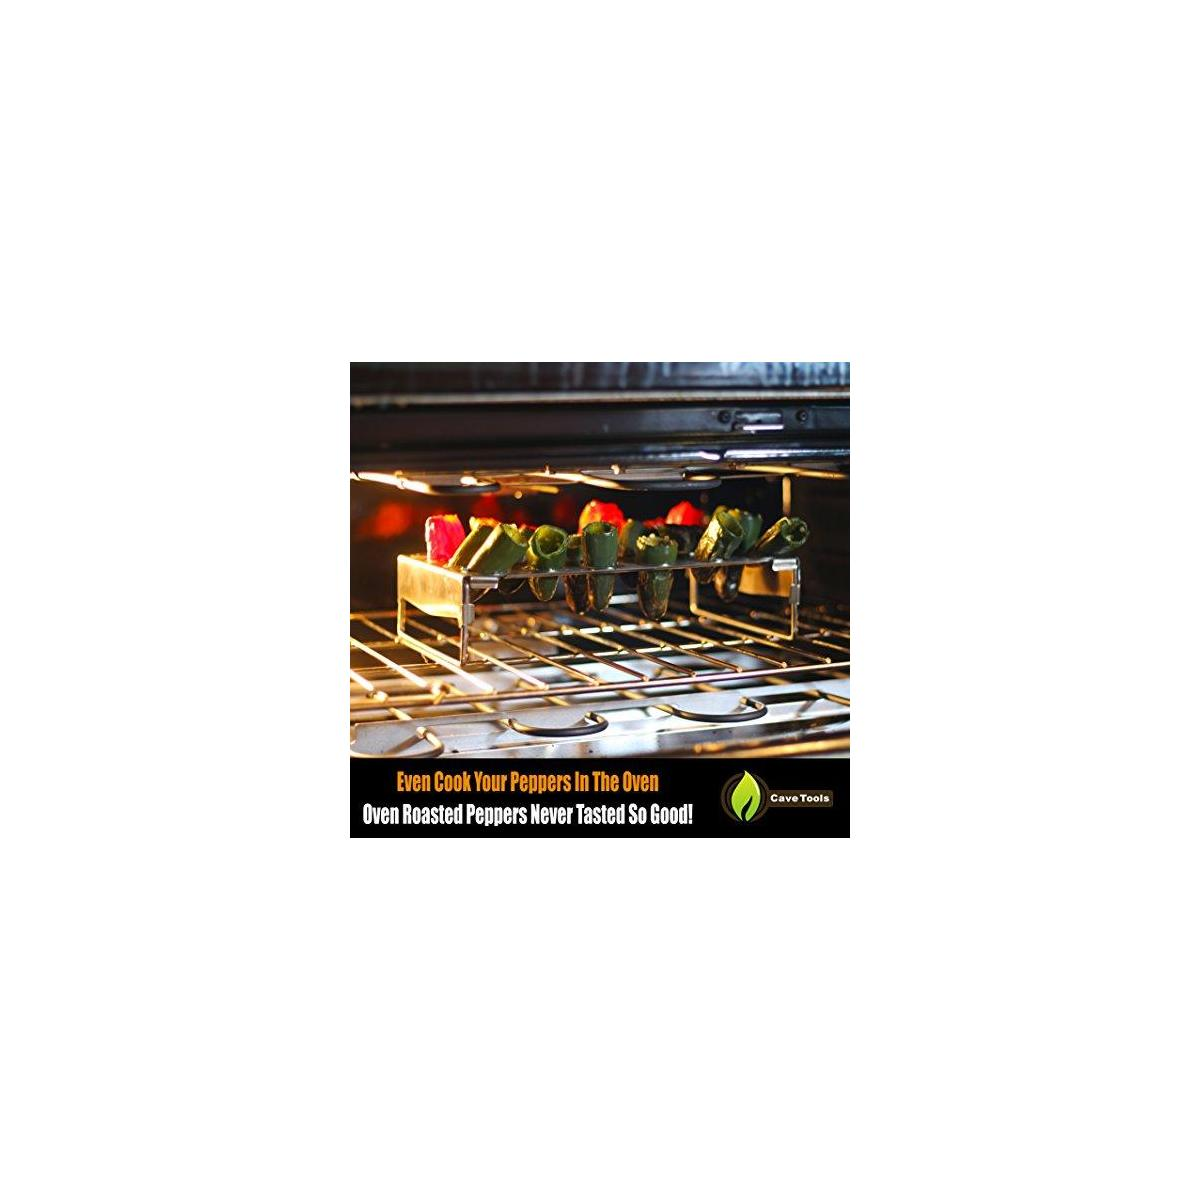 BBQ Skewers (10) Extra Long + Jalapeno Grill Rack & Pepper Corer Tool - Large 24 Capacity Roaster - Holder Also for Cooking Chili Chicken Legs & Wings - Dishwasher Safe Stainless Steel Accessories